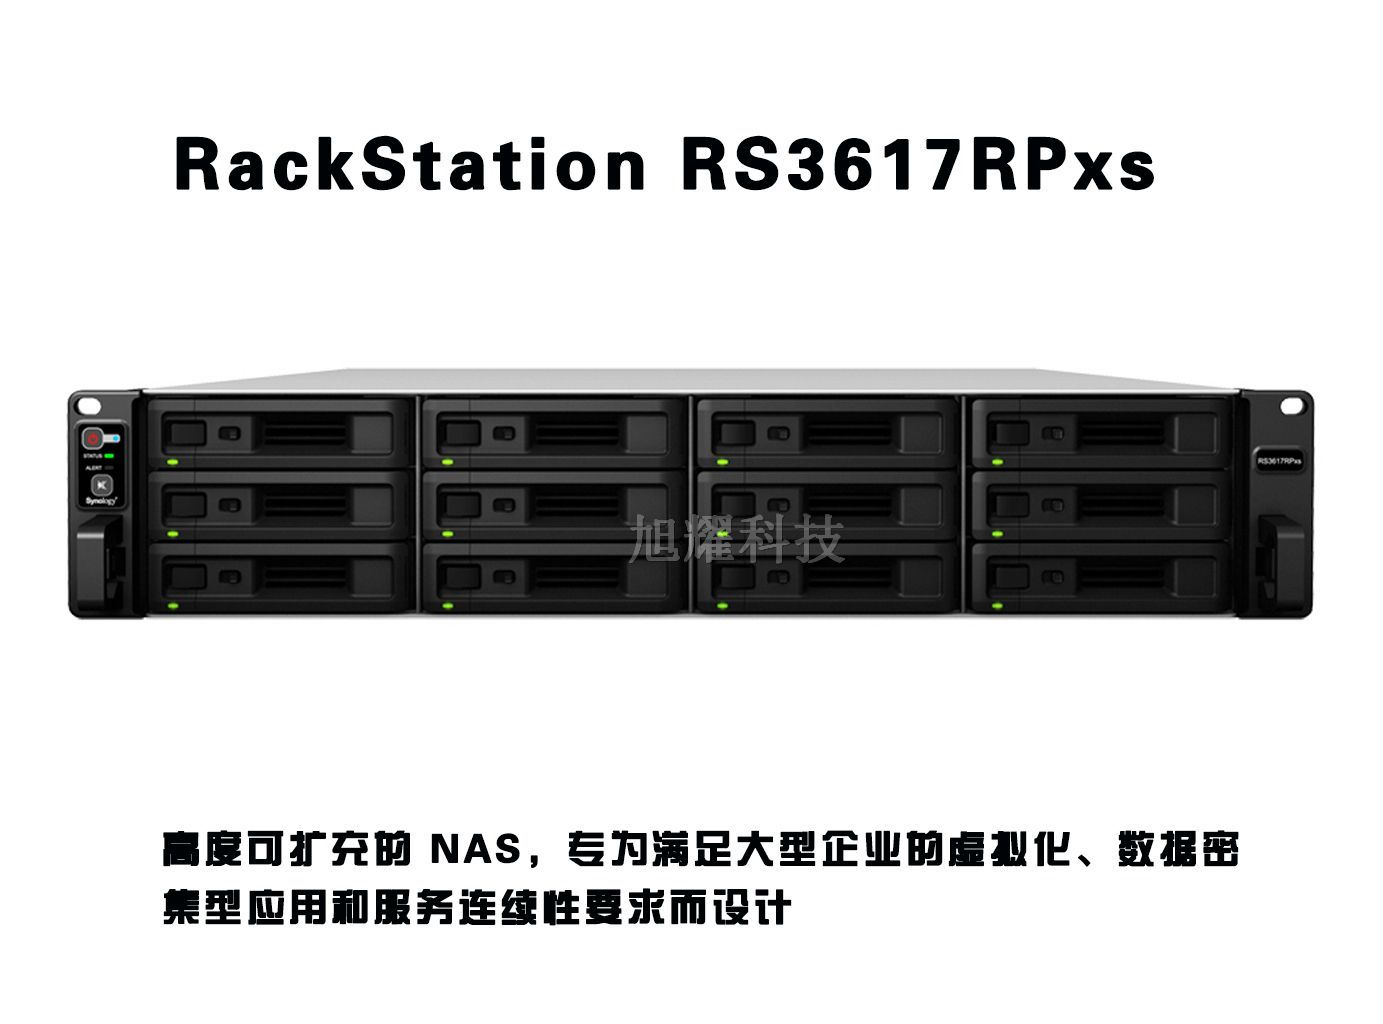 群晖 RackStation RS3617RPxs